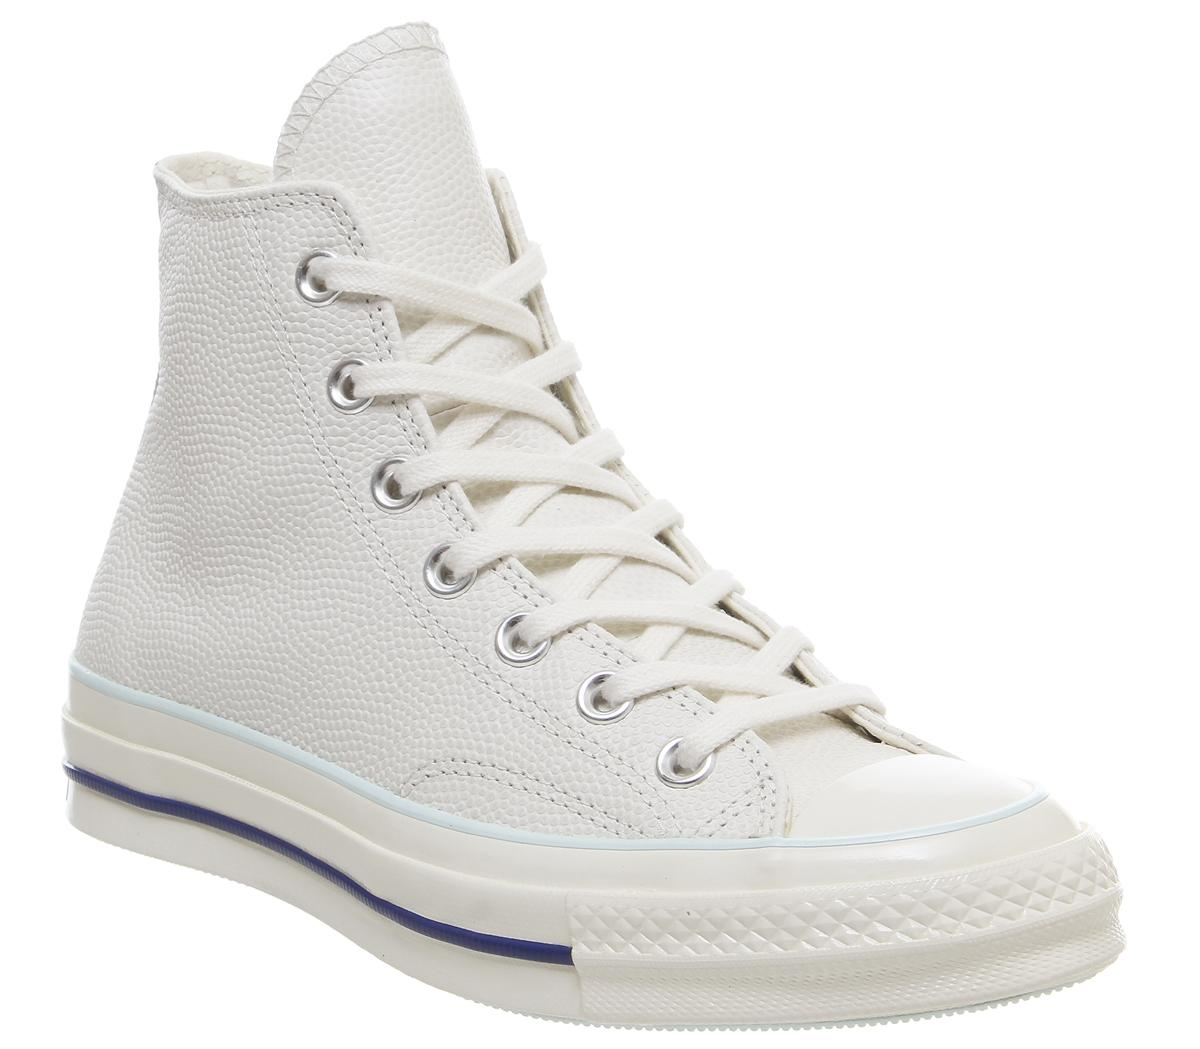 All Star Hi 70's Trainers